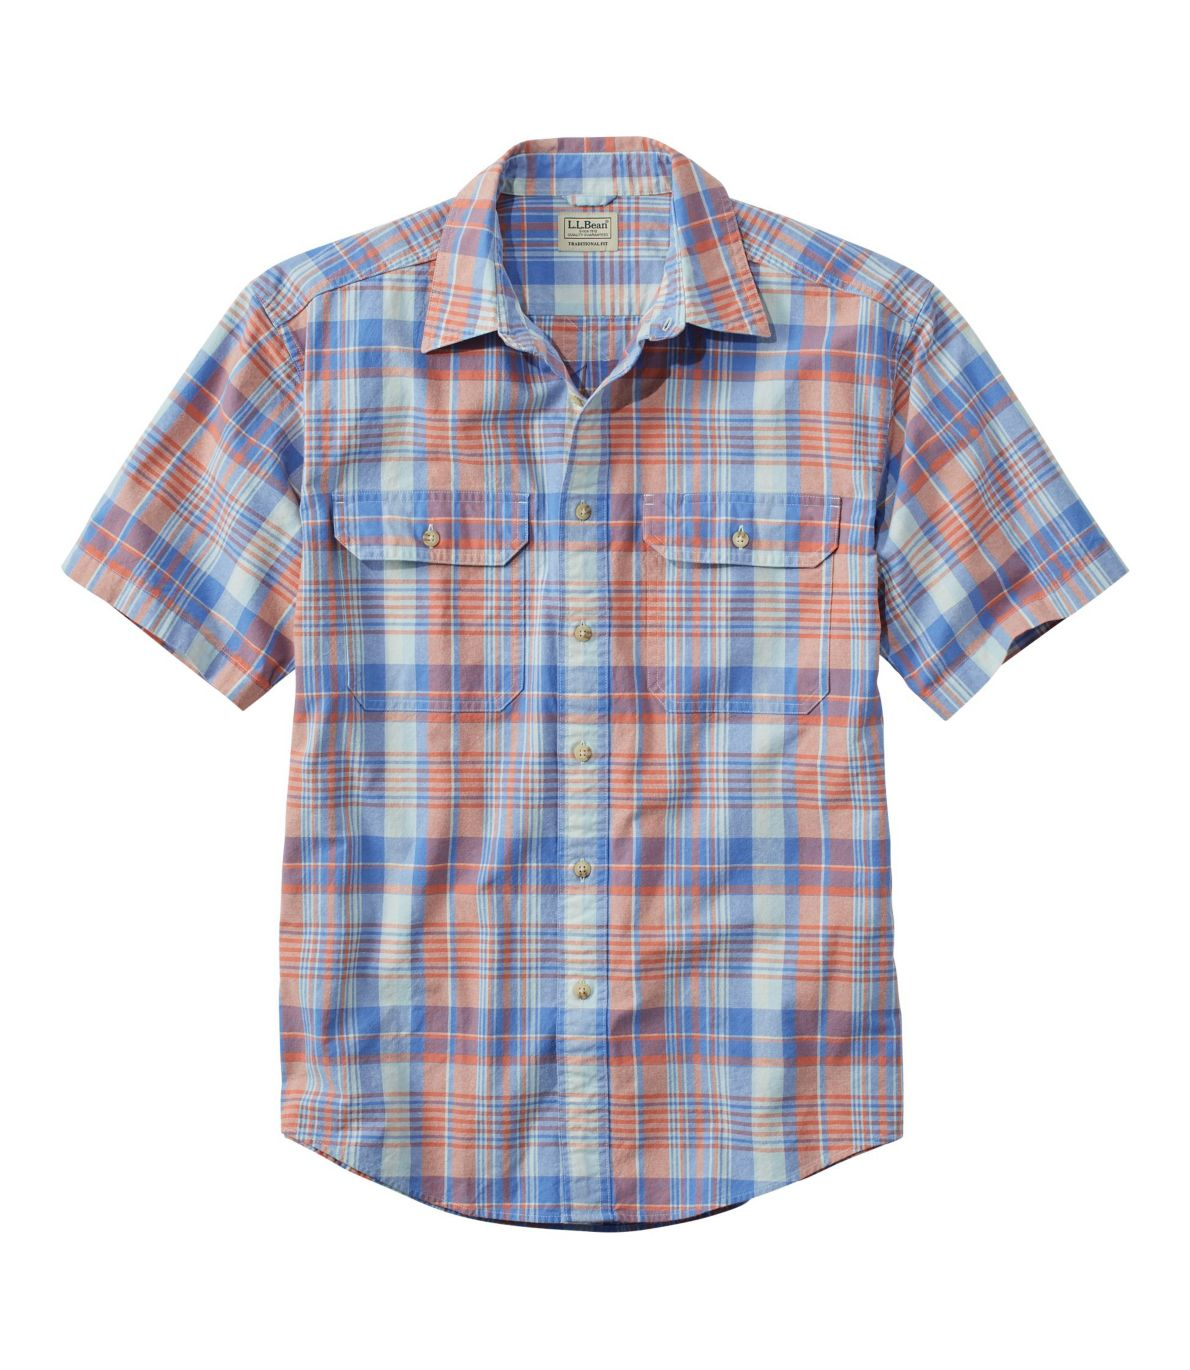 Sunwashed Canvas Shirt Short Sleeve Traditional Fit Plaid Men's Tall